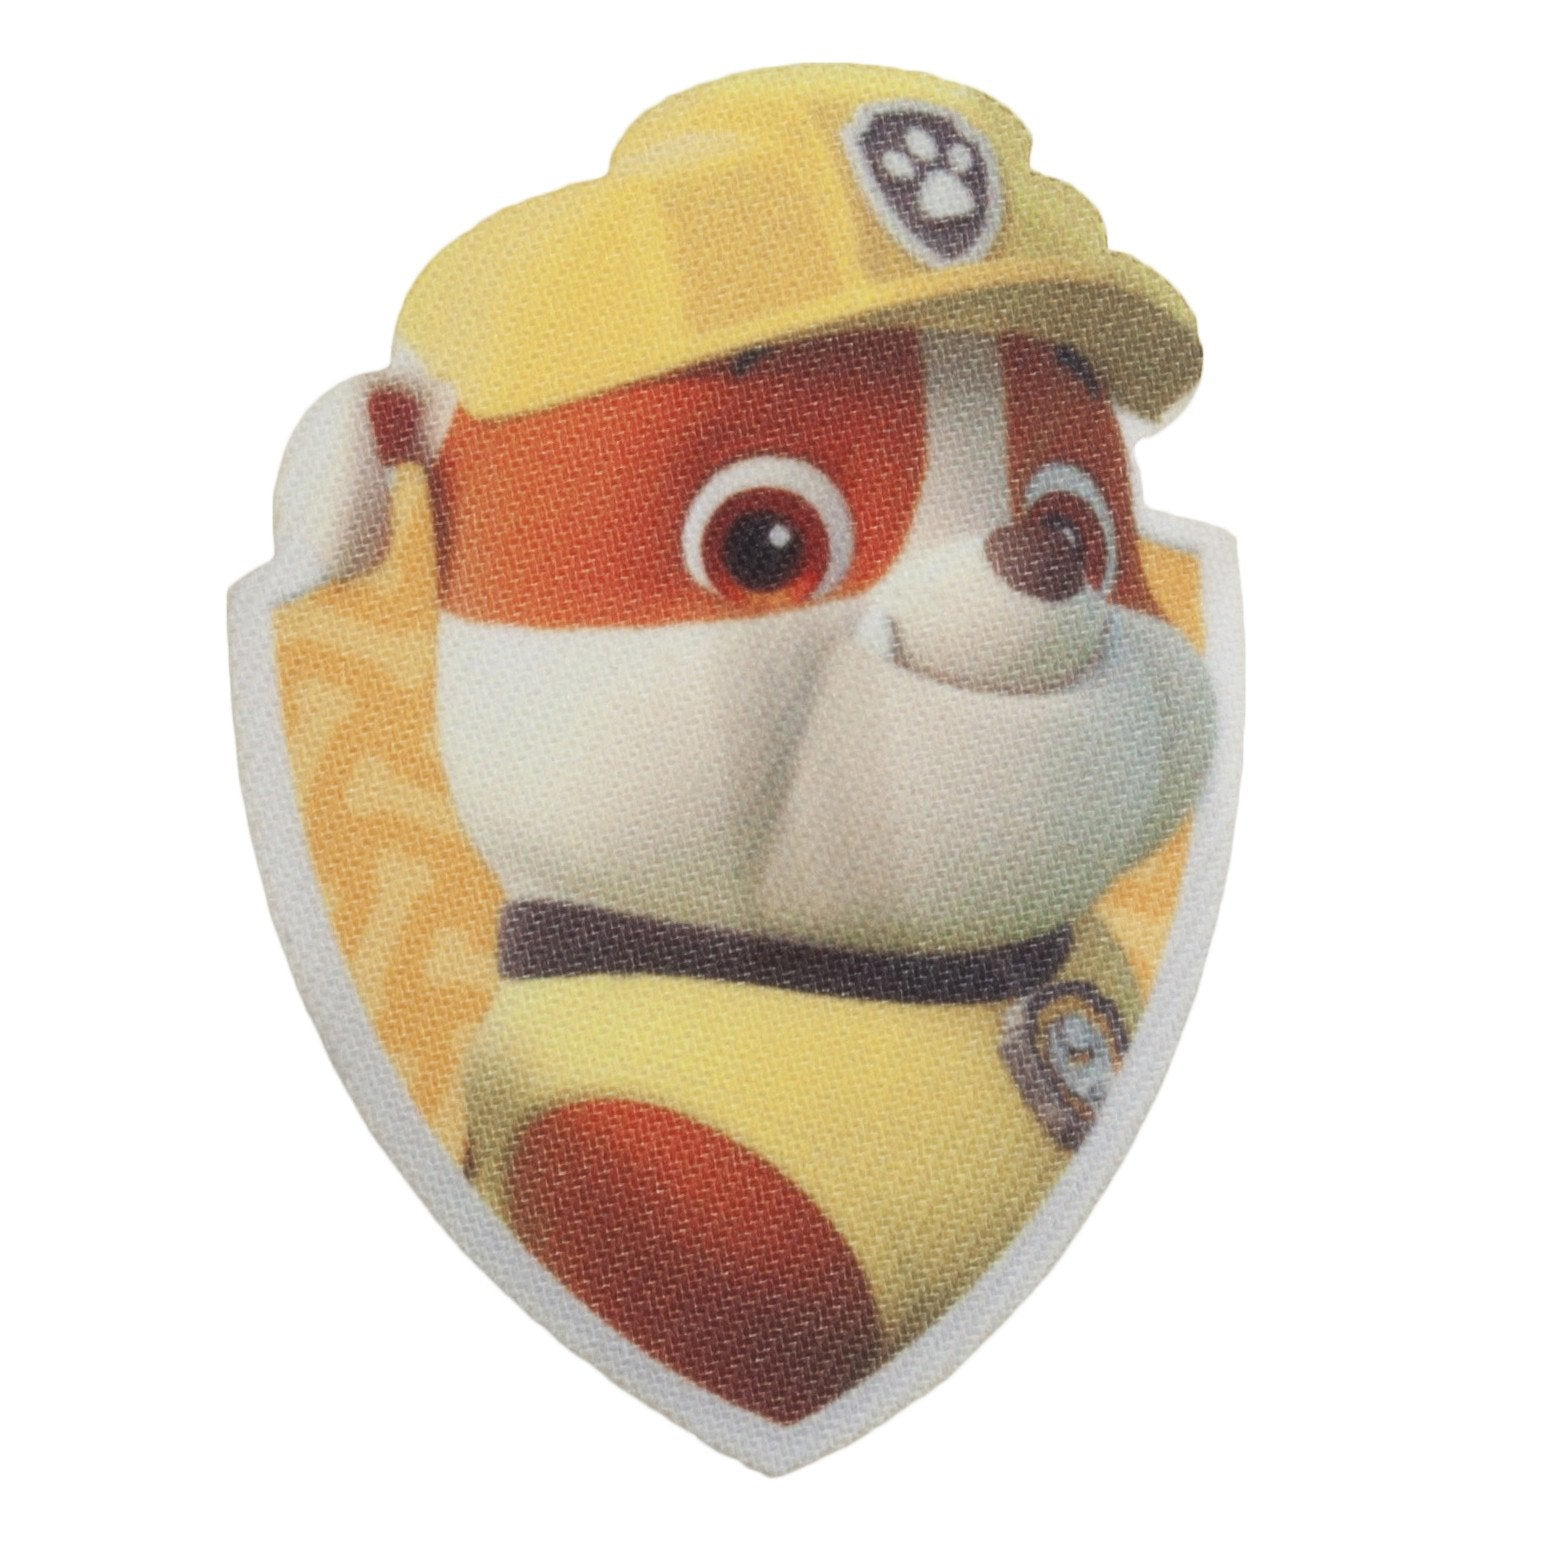 Character Cloth Badges - Paw Patrol: Rubble Shield